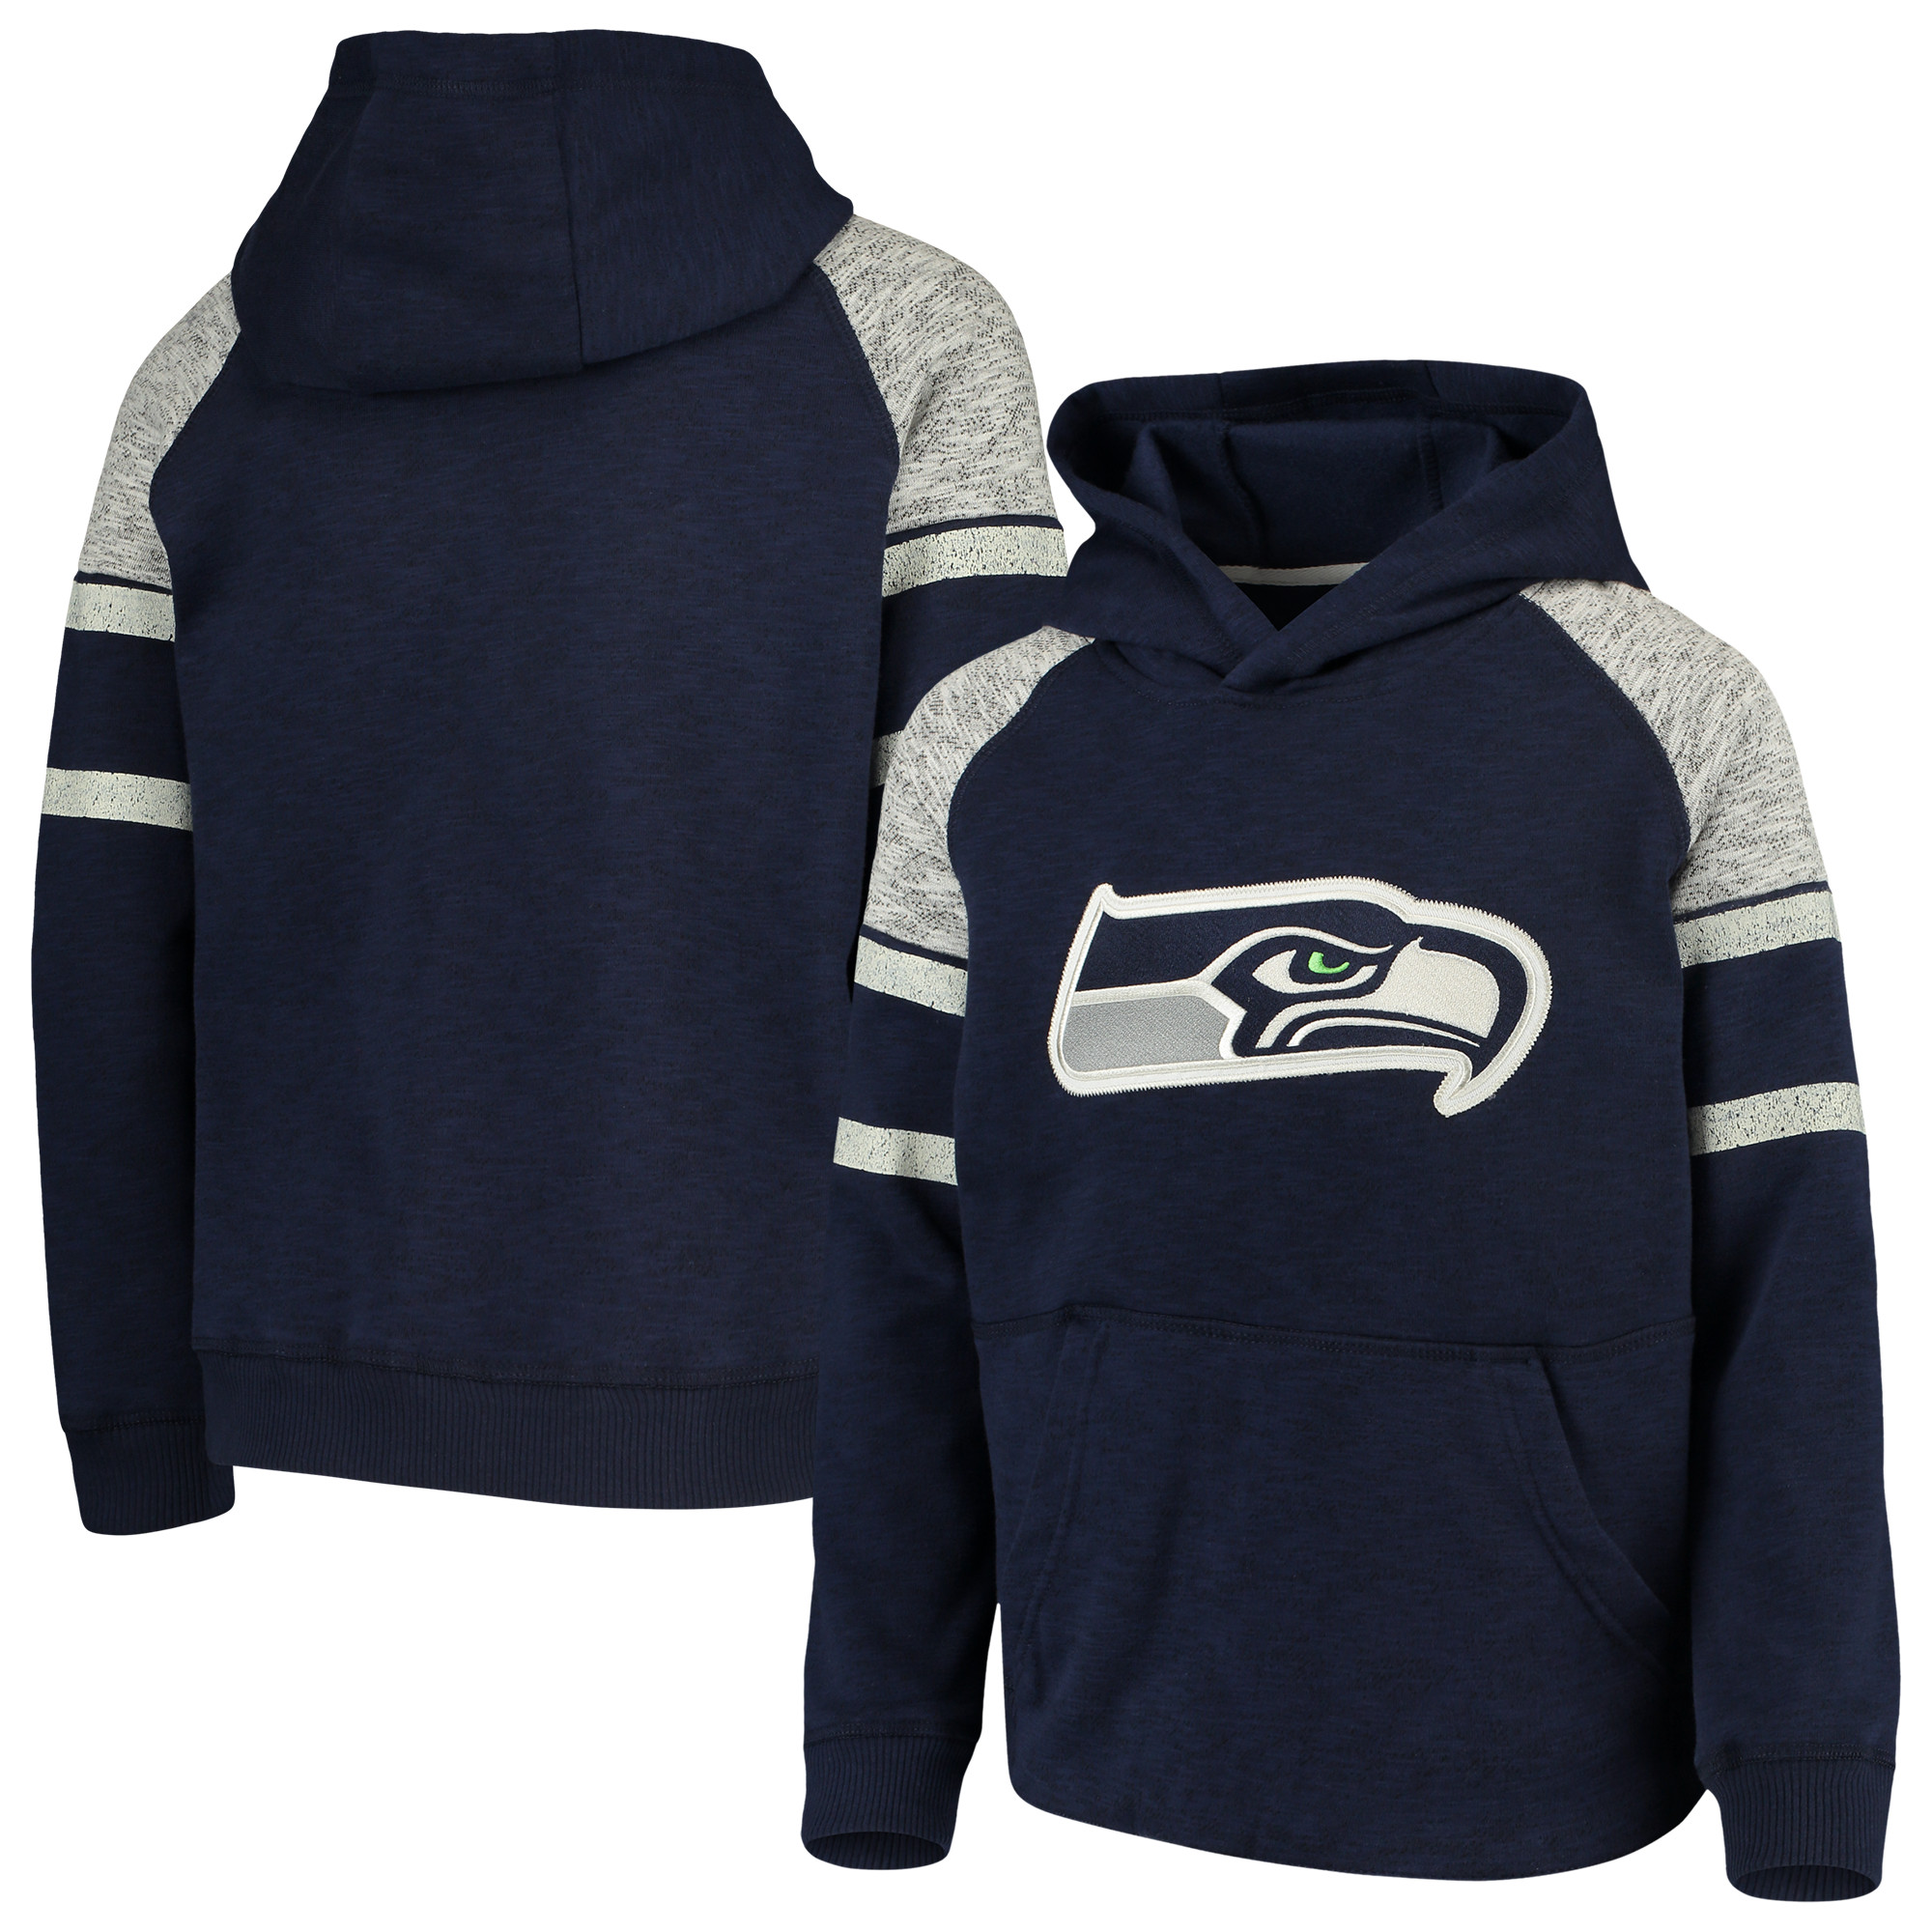 Seattle Seahawks Youth Linebacker Raglan Pullover Hoodie - College Navy